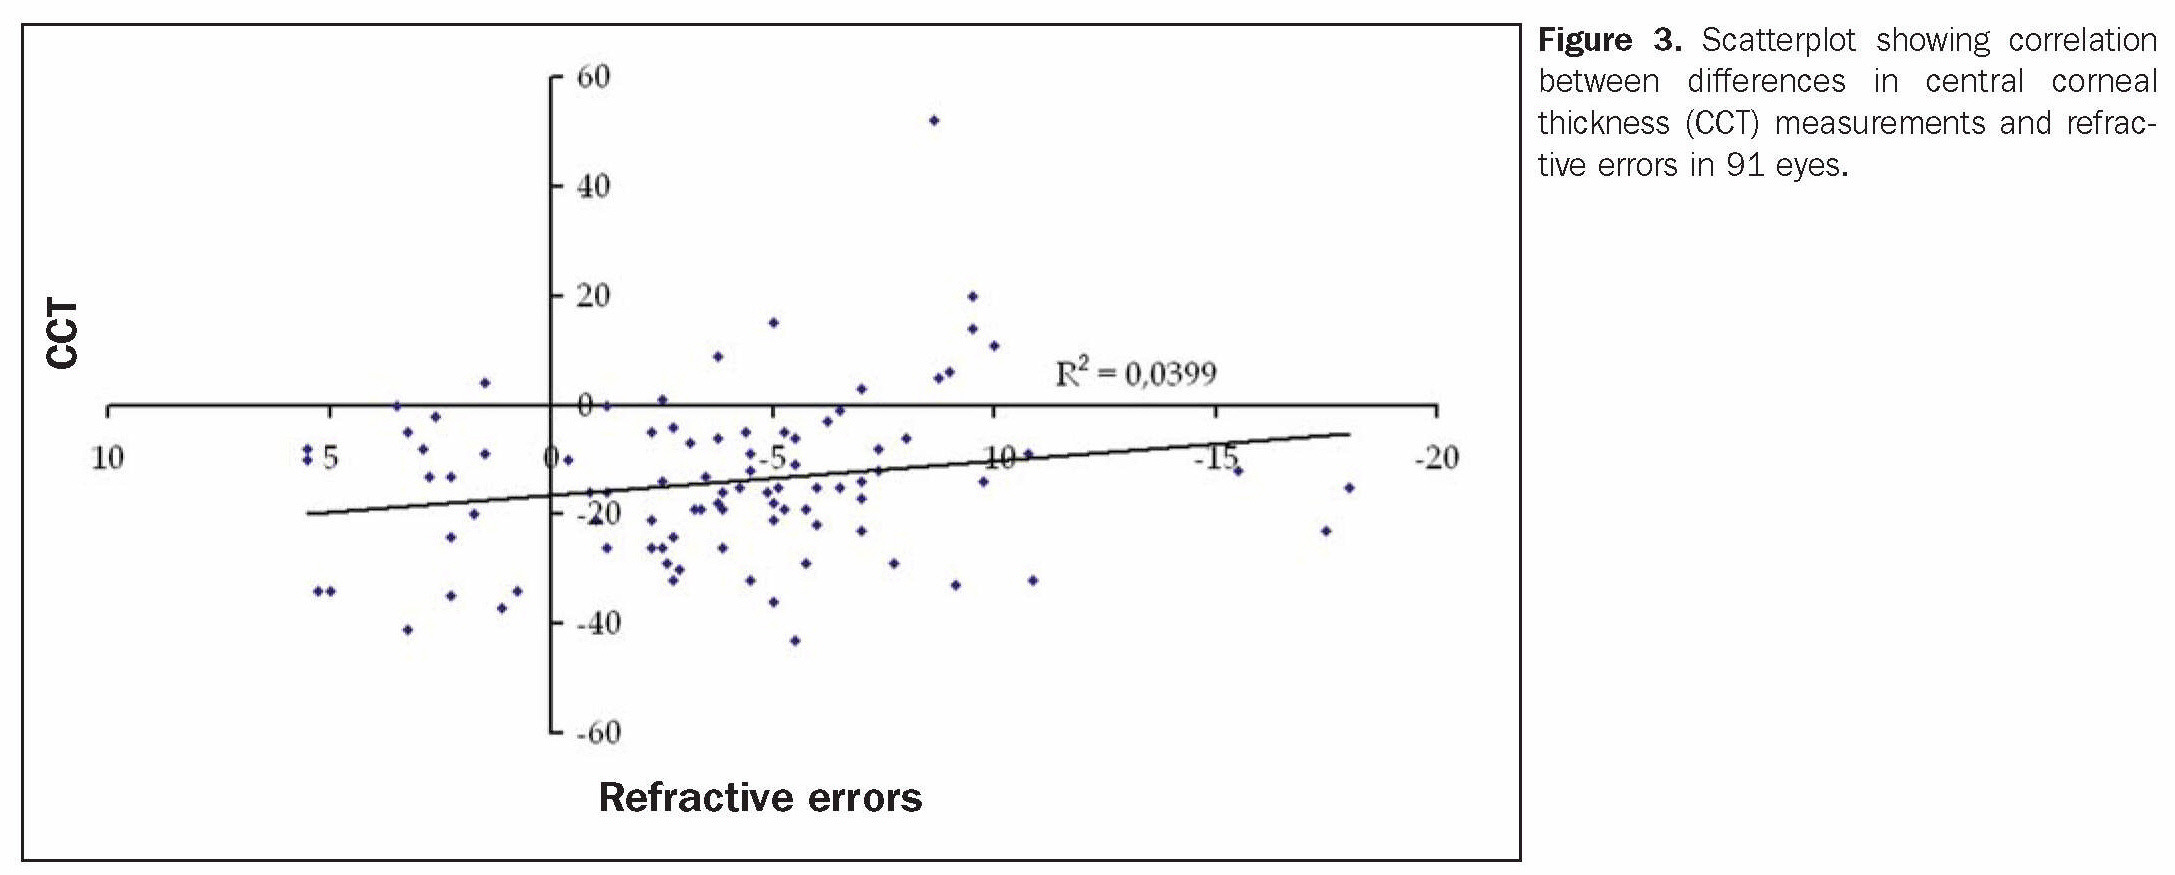 Figure 3. Scatterplot showing correlation between differences in central corneal thickness (CCT) measurements and refractive errors in 91 eyes.